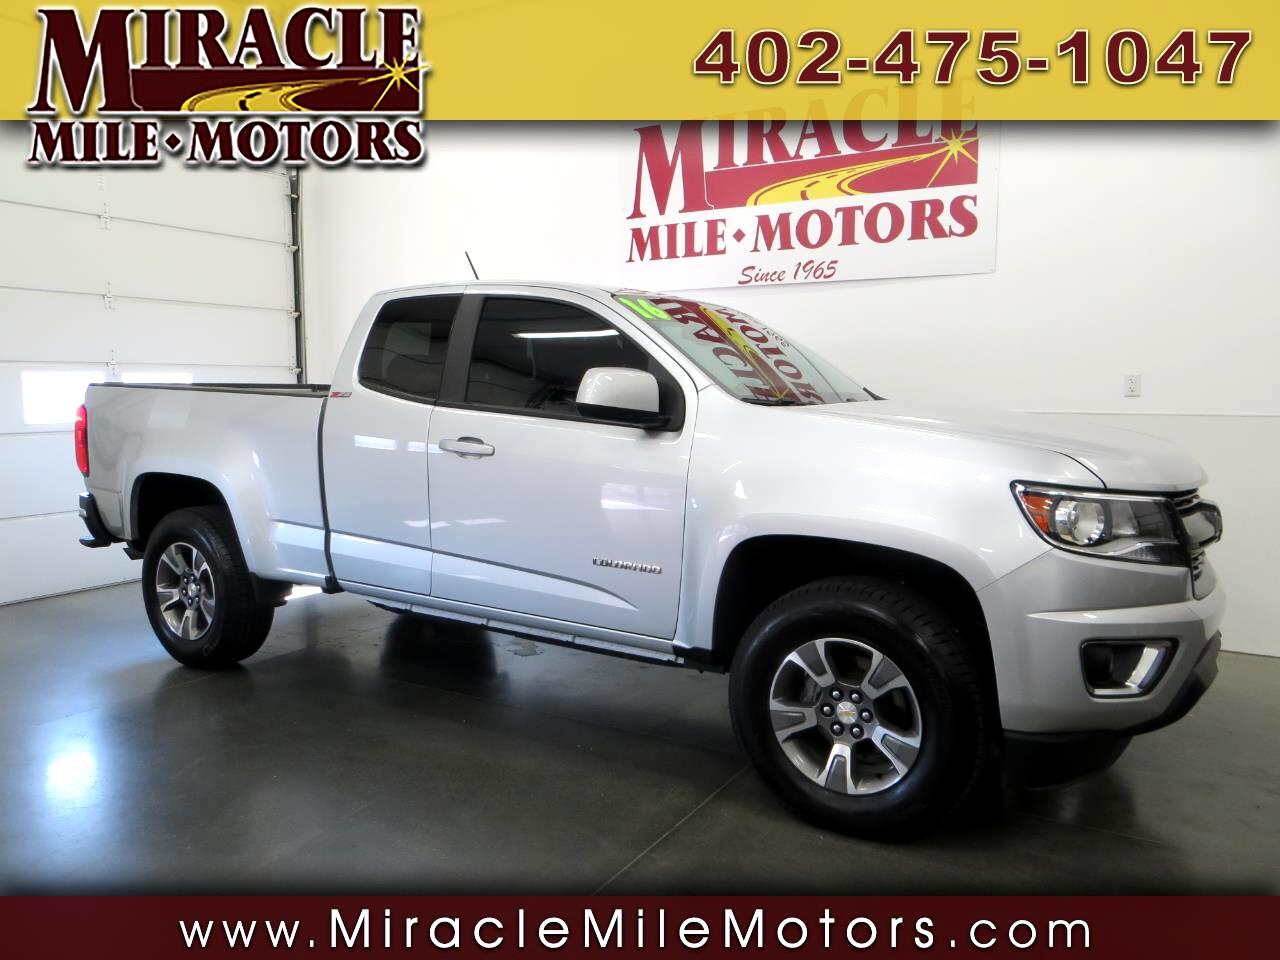 Used Cars for Sale Miracle Mile Motors